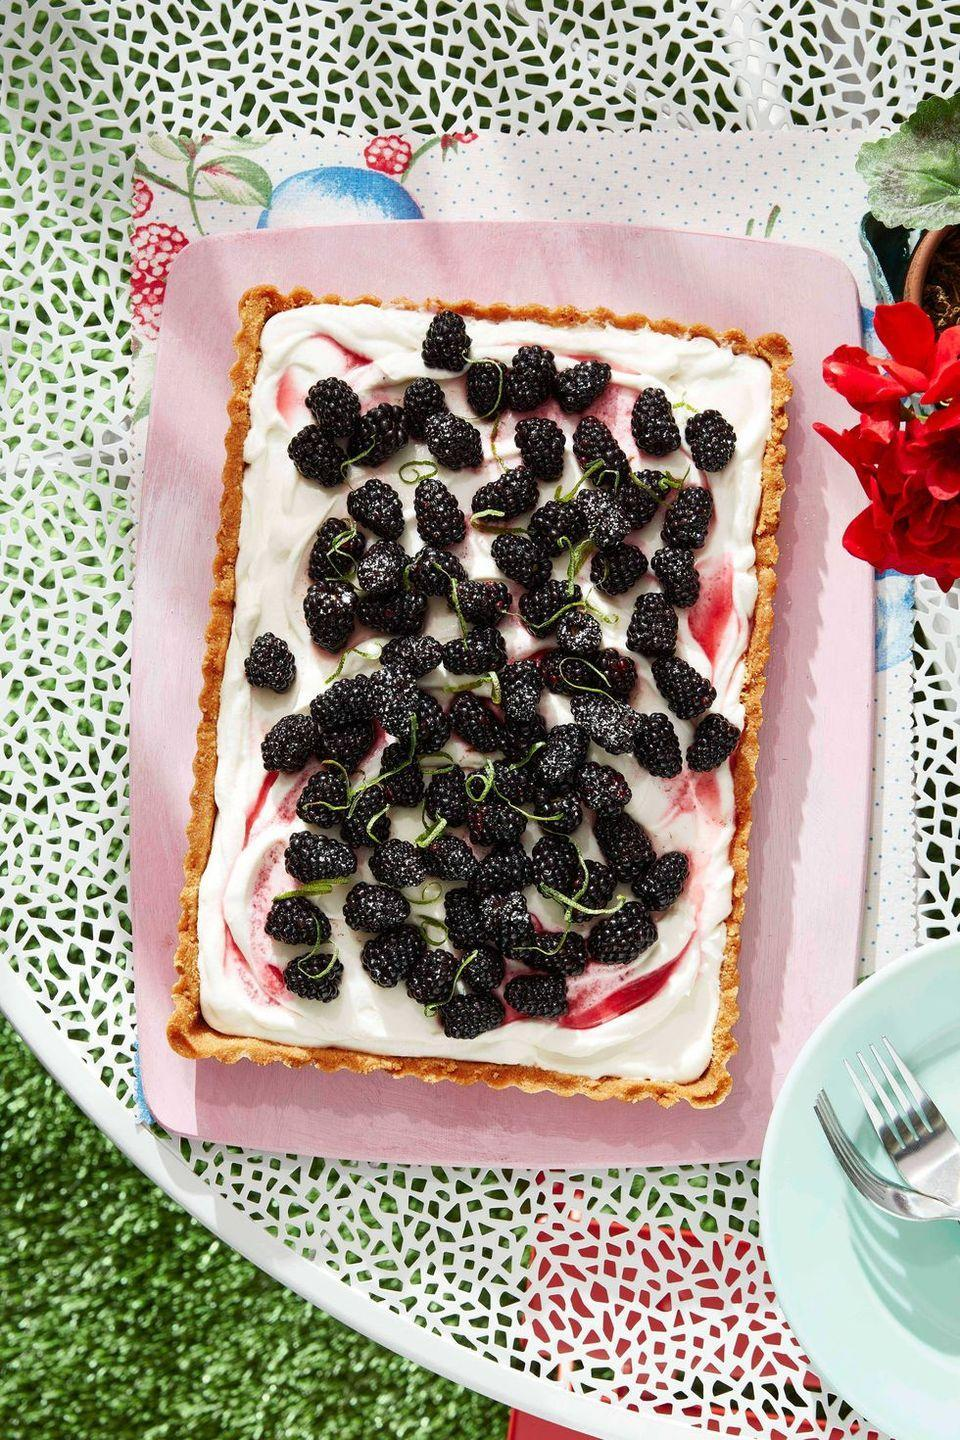 """<p>A rich blackberry mascarpone filling makes this tart irresistible, especially alongside your other delicious brunch treats.</p><p><strong><a href=""""https://www.countryliving.com/food-drinks/a28609911/blackberry-tart-recipe/"""" rel=""""nofollow noopener"""" target=""""_blank"""" data-ylk=""""slk:Get the recipe"""" class=""""link rapid-noclick-resp"""">Get the recipe</a>.</strong> </p>"""